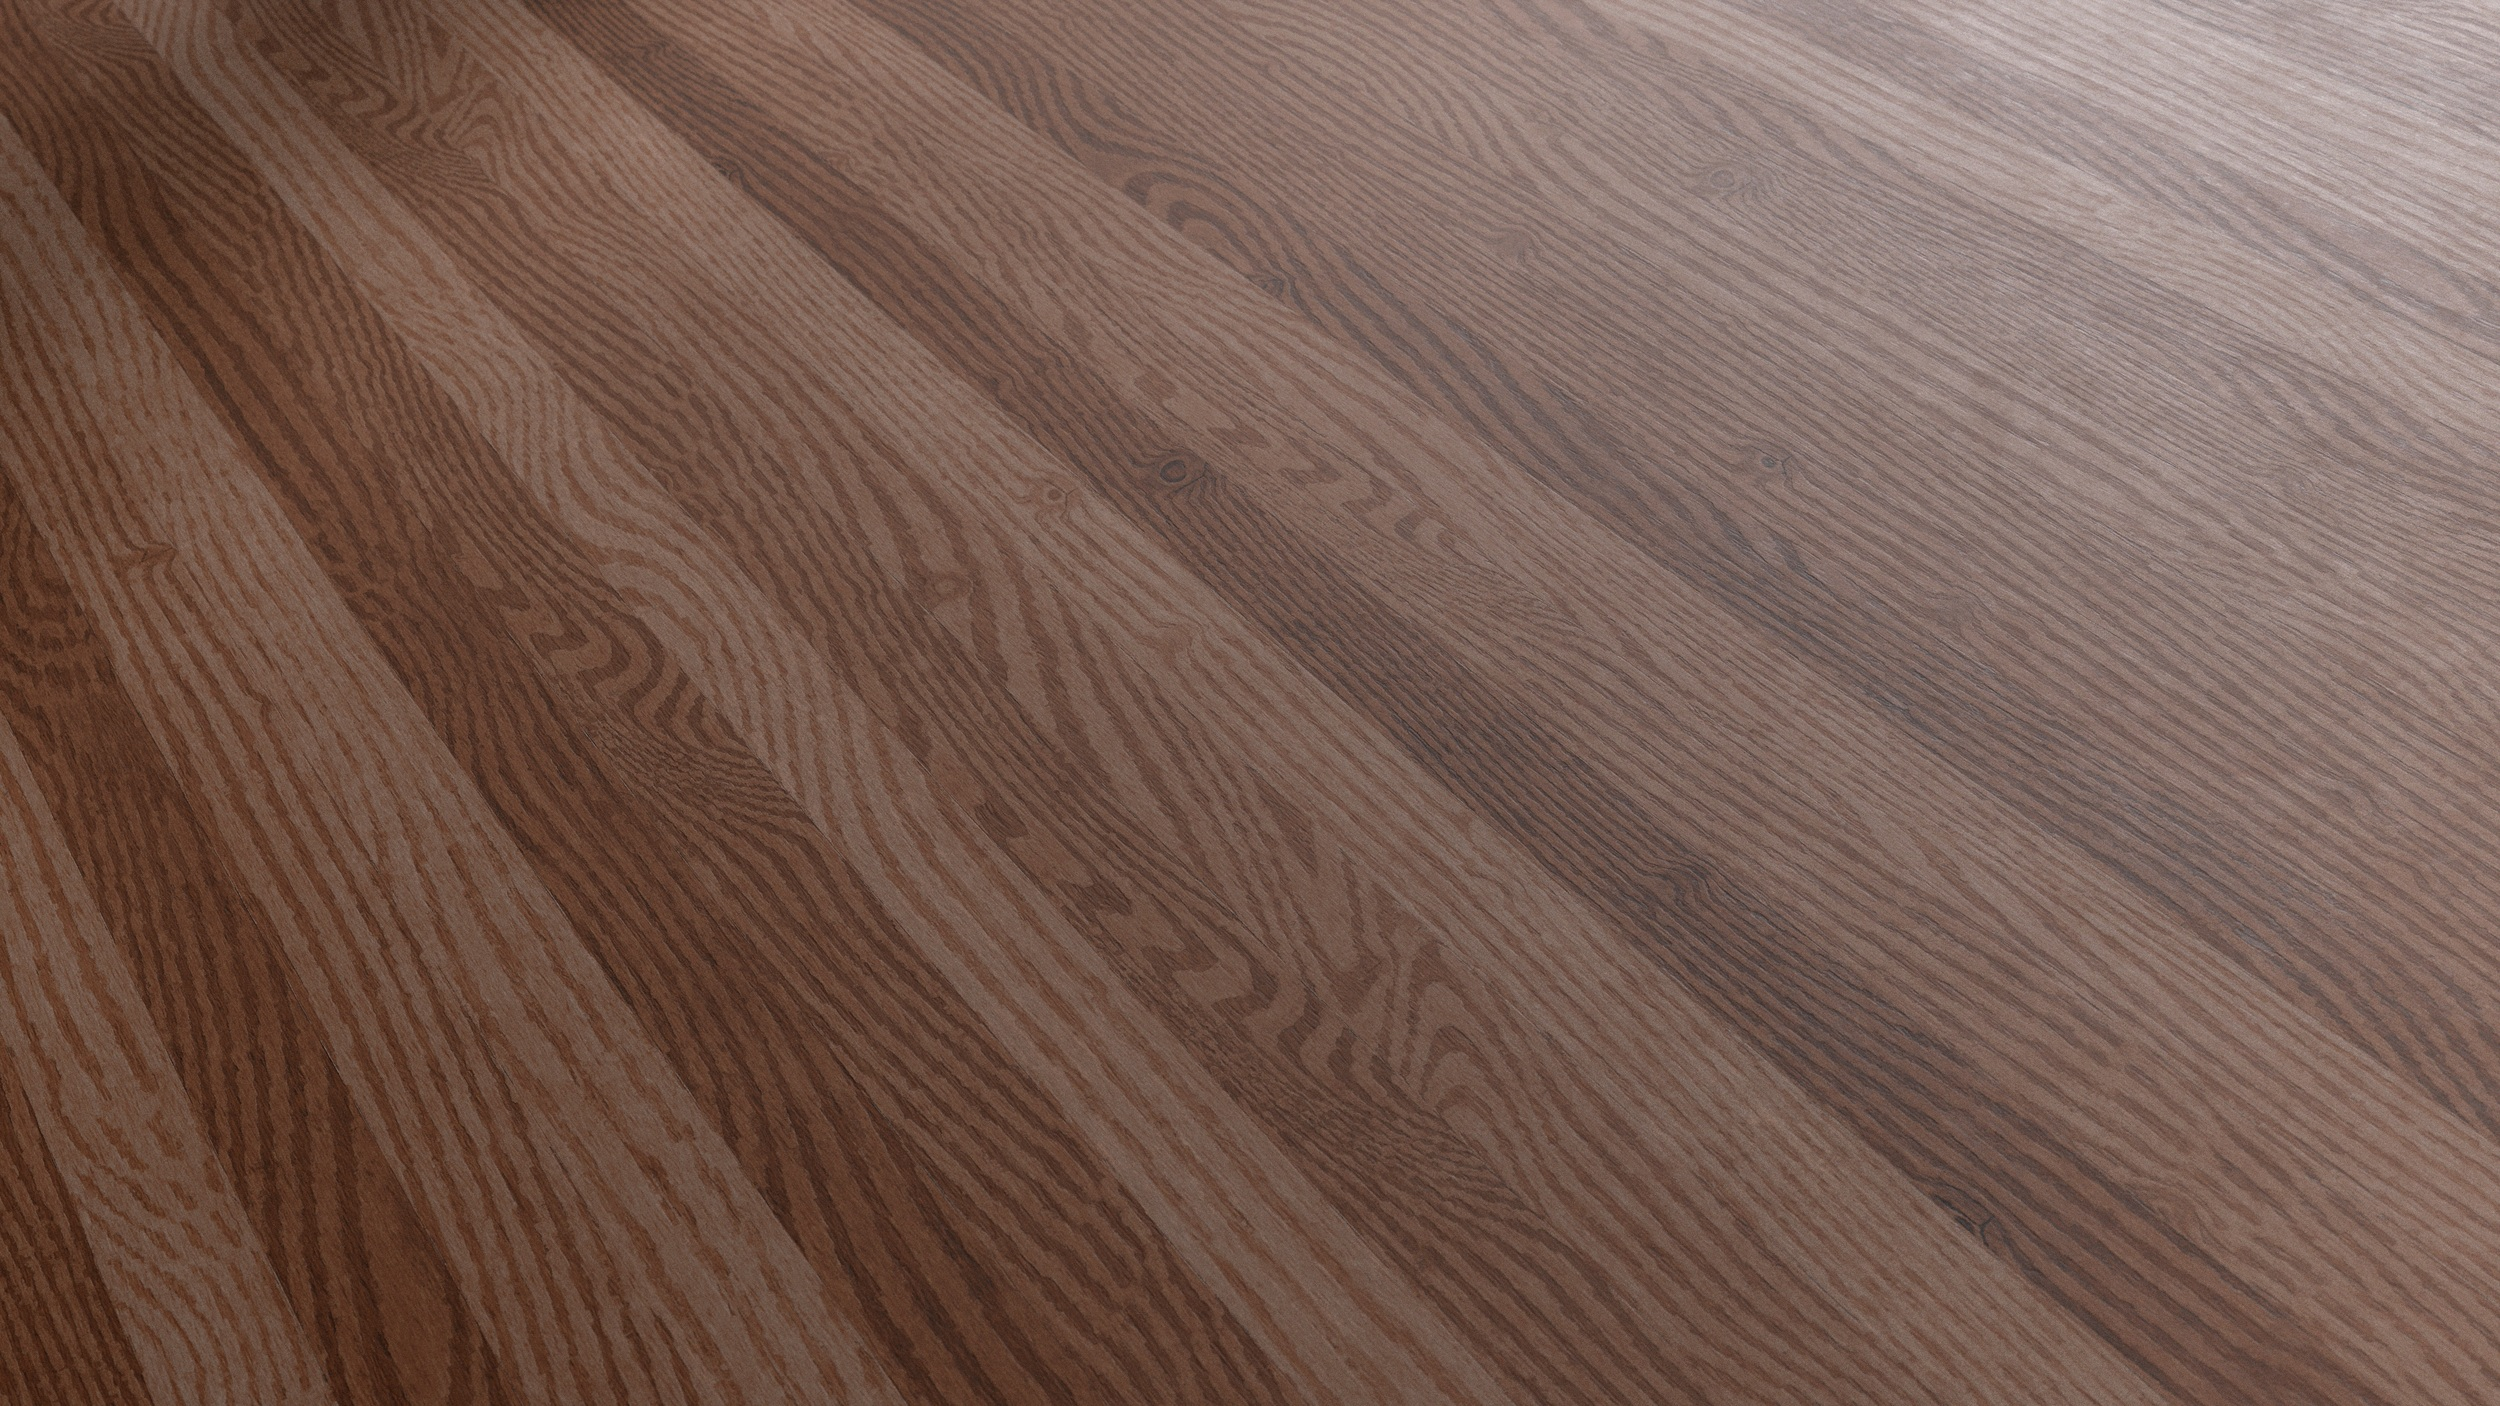 Tcom_Wood_Laminated_header3.jpg